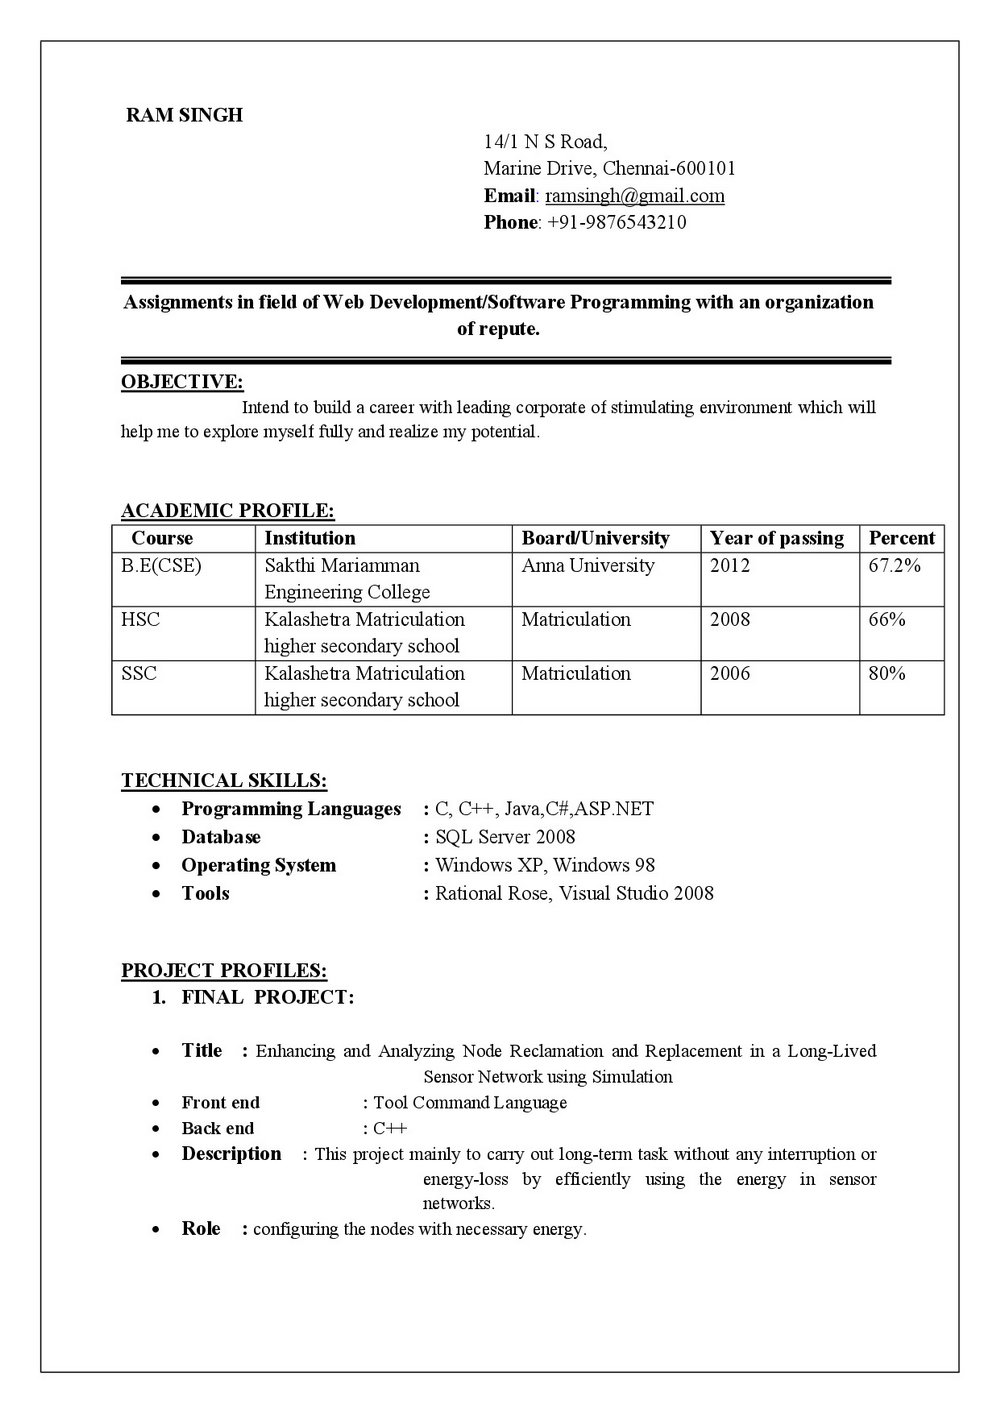 Resume For Freshers Engineers Pdf Free Download